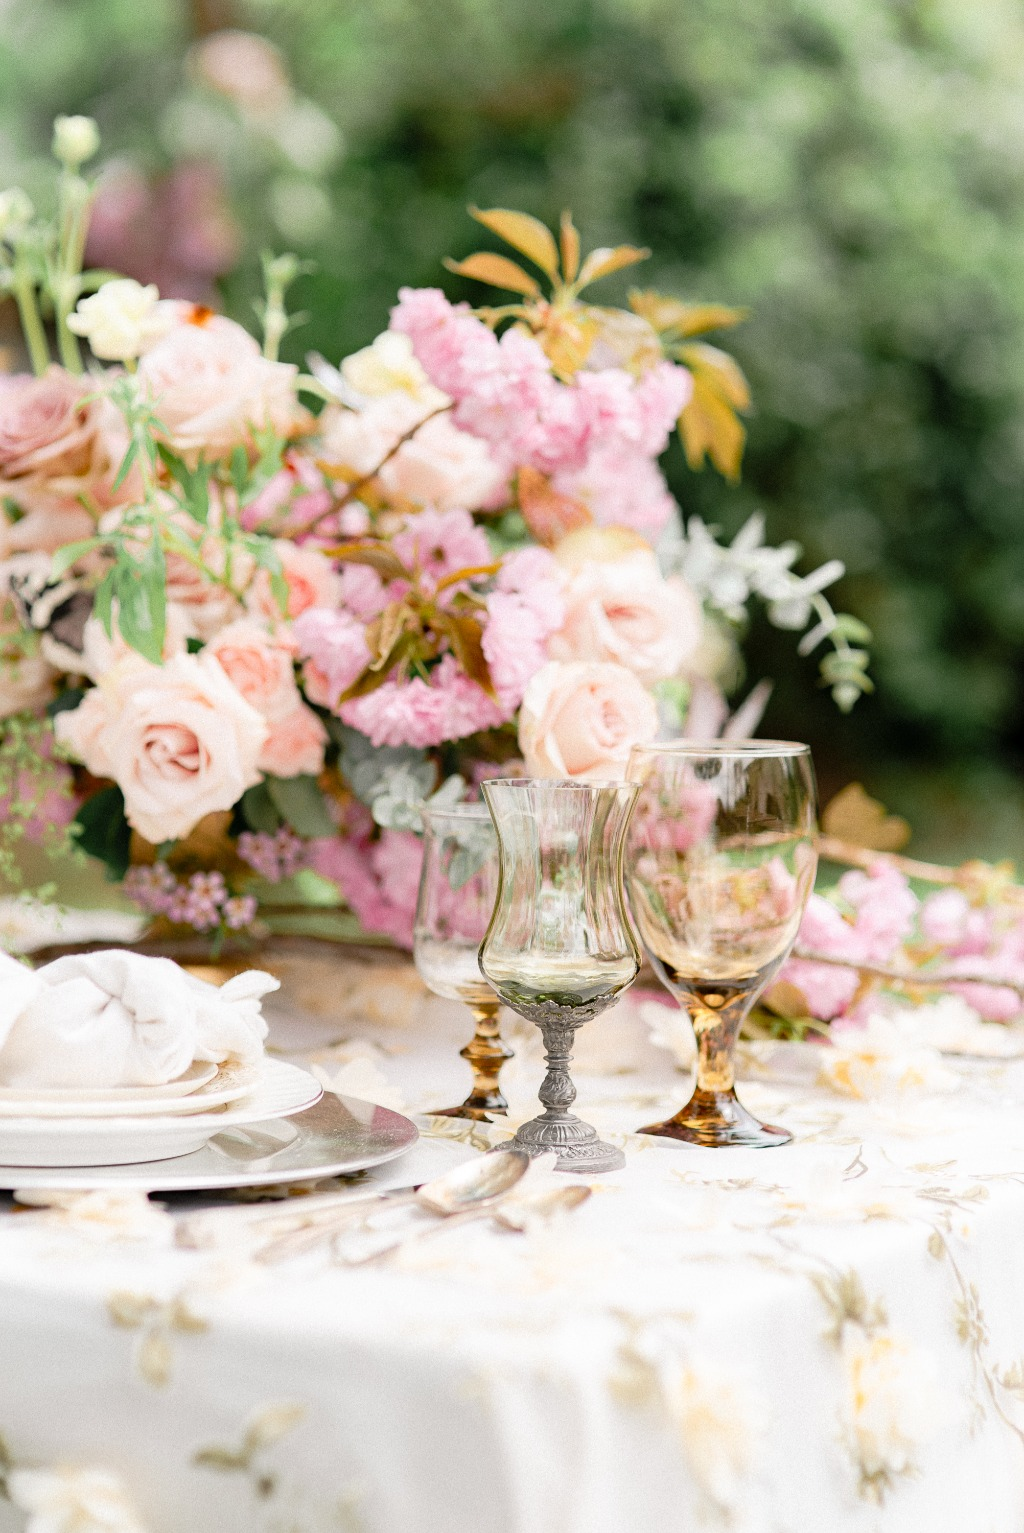 Table Design Details to bring all the elements together